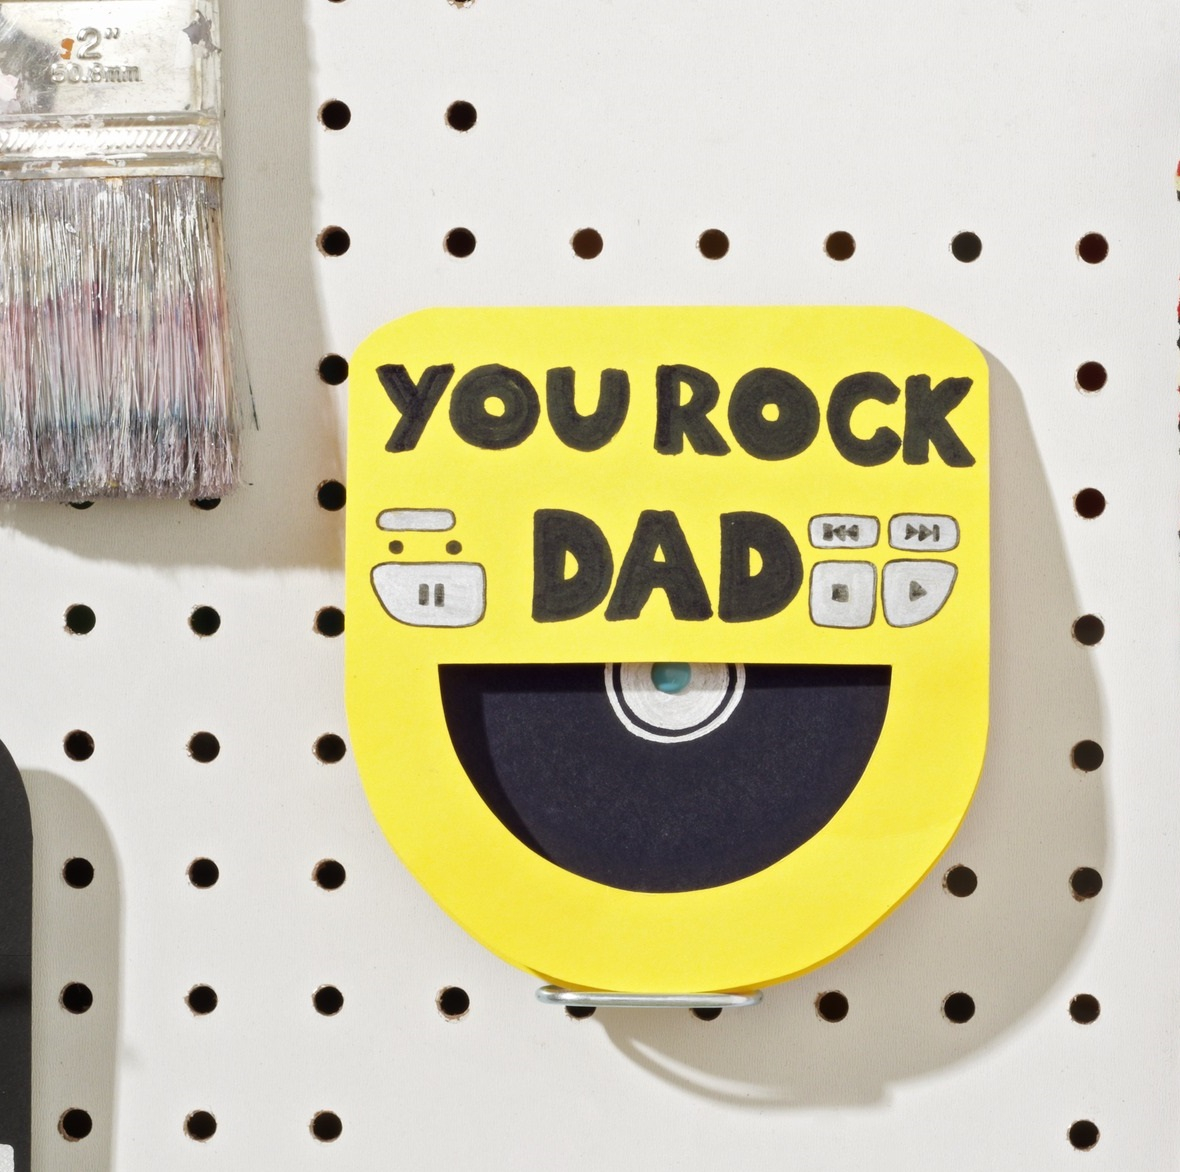 Cards For Dads Birthday Ideas Fathers Day Crafts For Kids 21 Too Cute Gift Ideas For Dad Parents